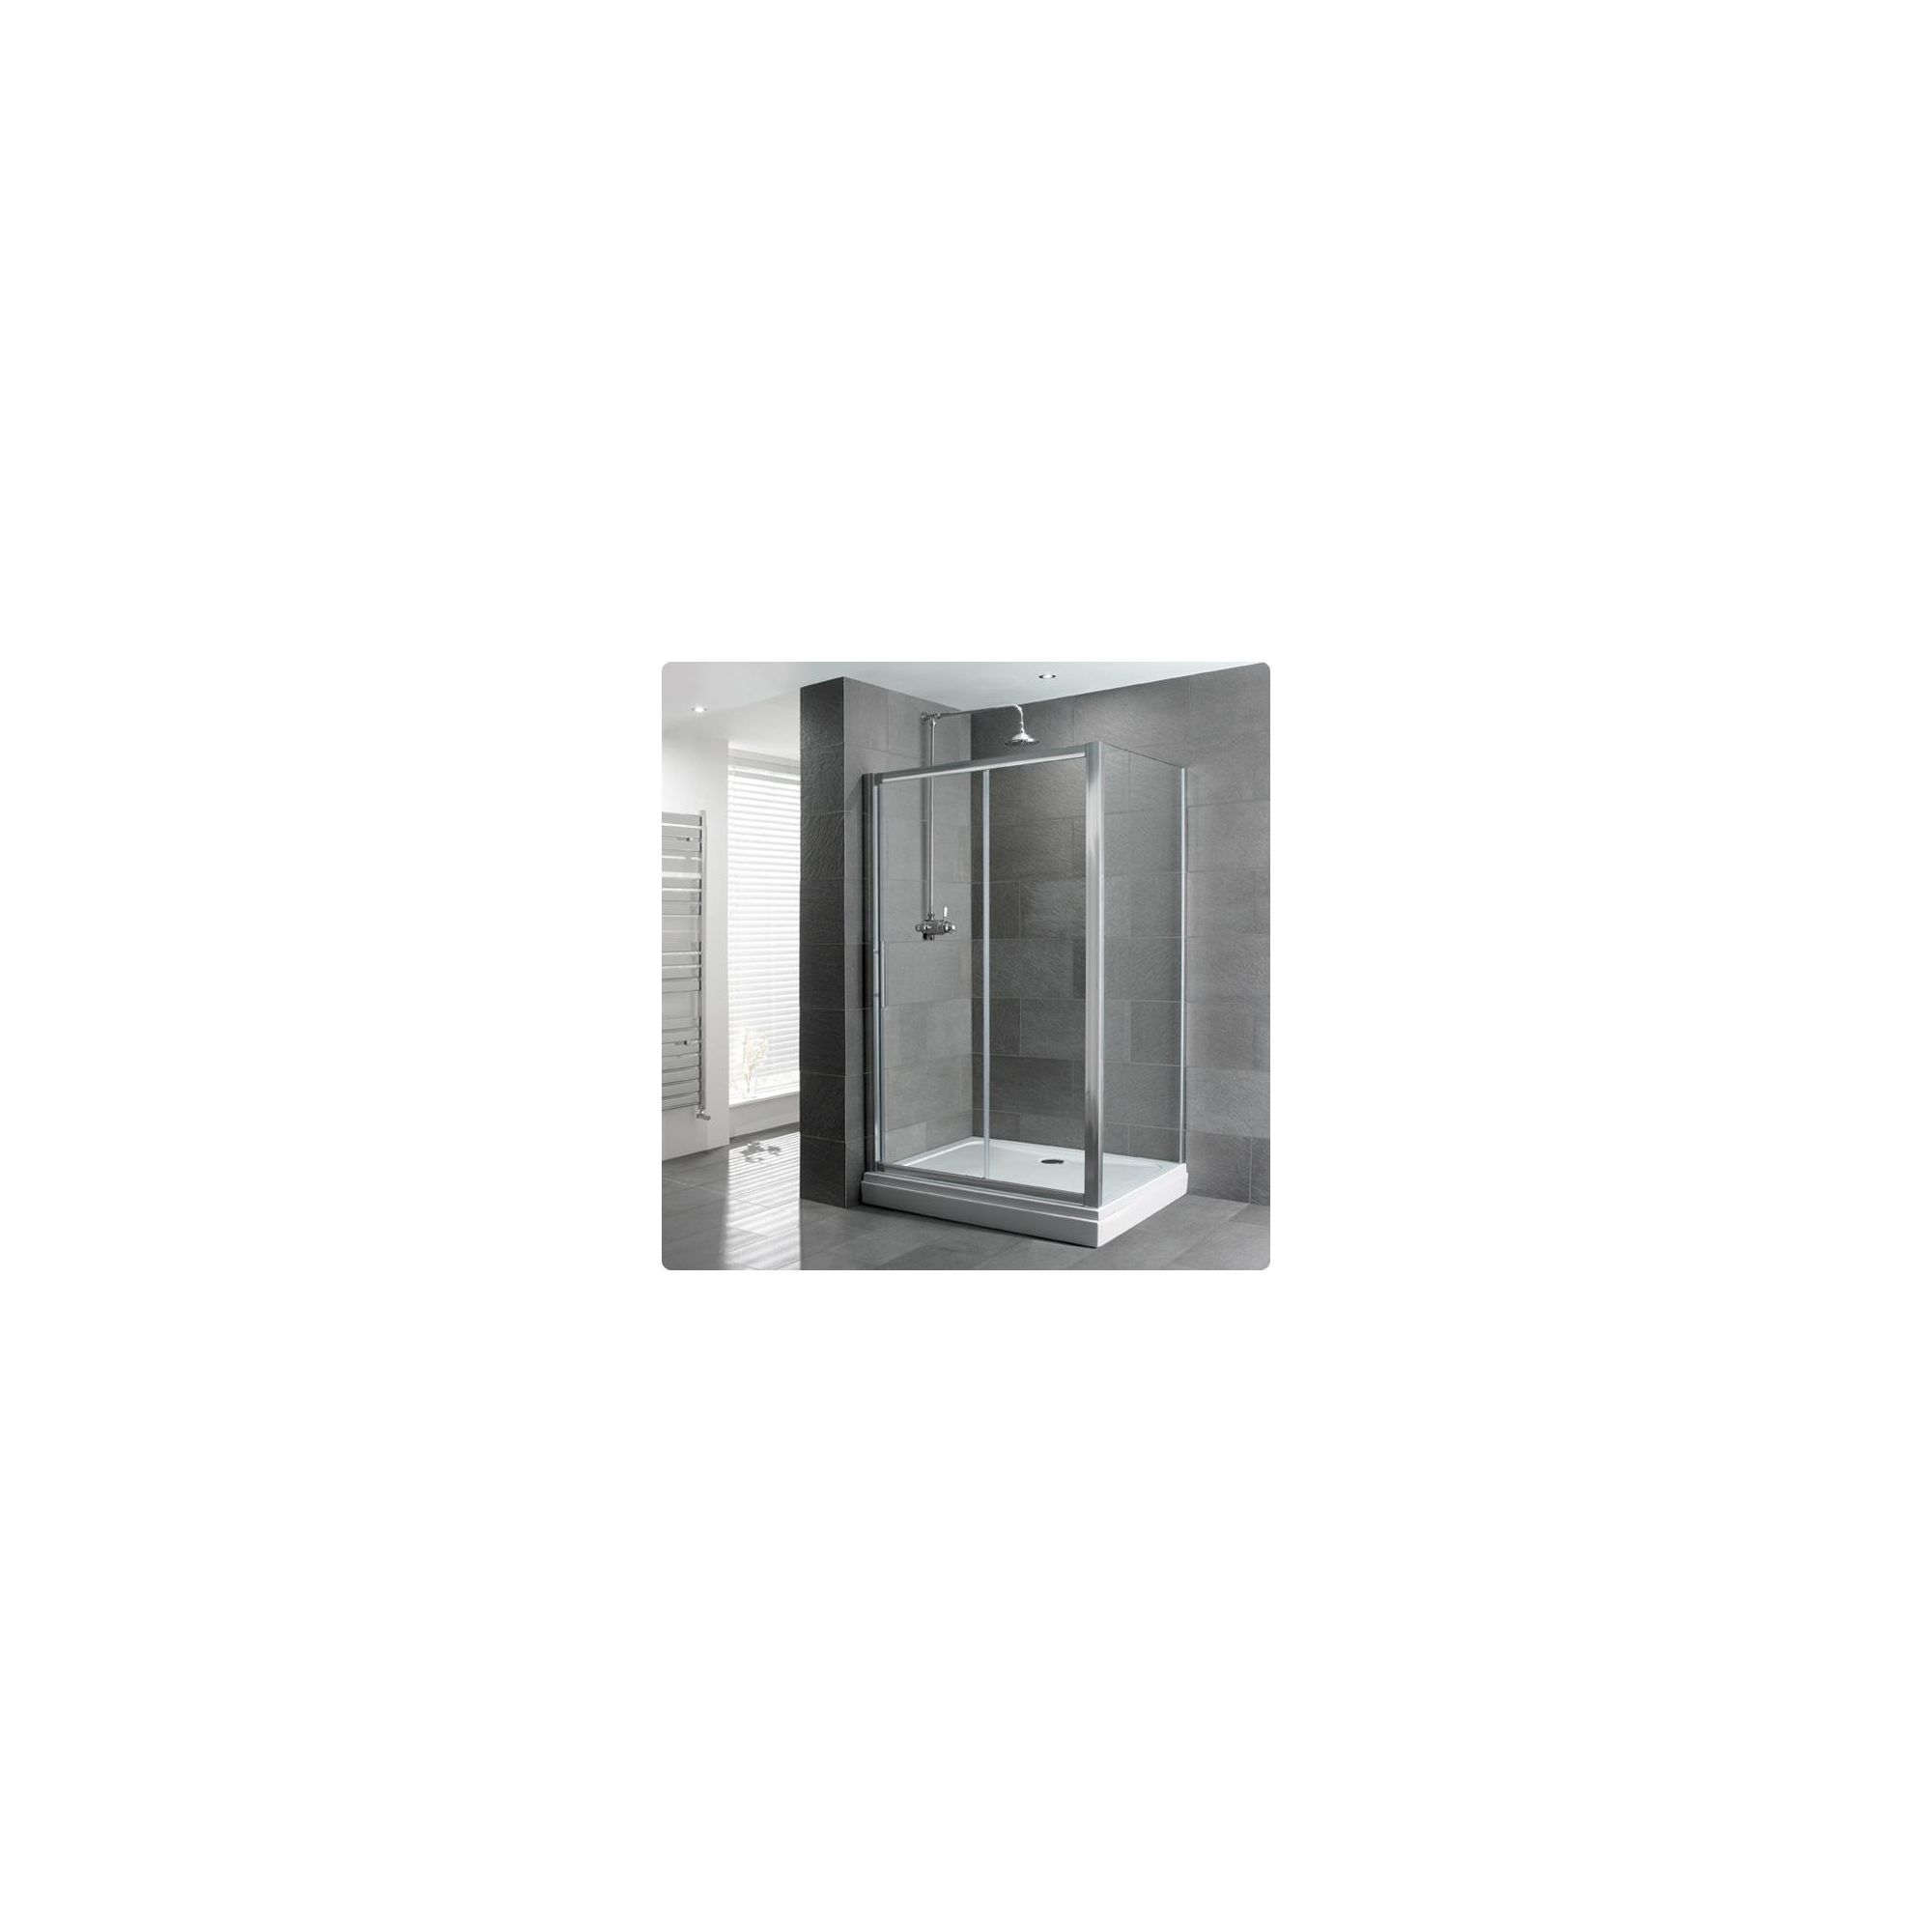 Duchy Select Silver Single Sliding Door Shower Enclosure, 1200mm x 700mm, Standard Tray, 6mm Glass at Tescos Direct